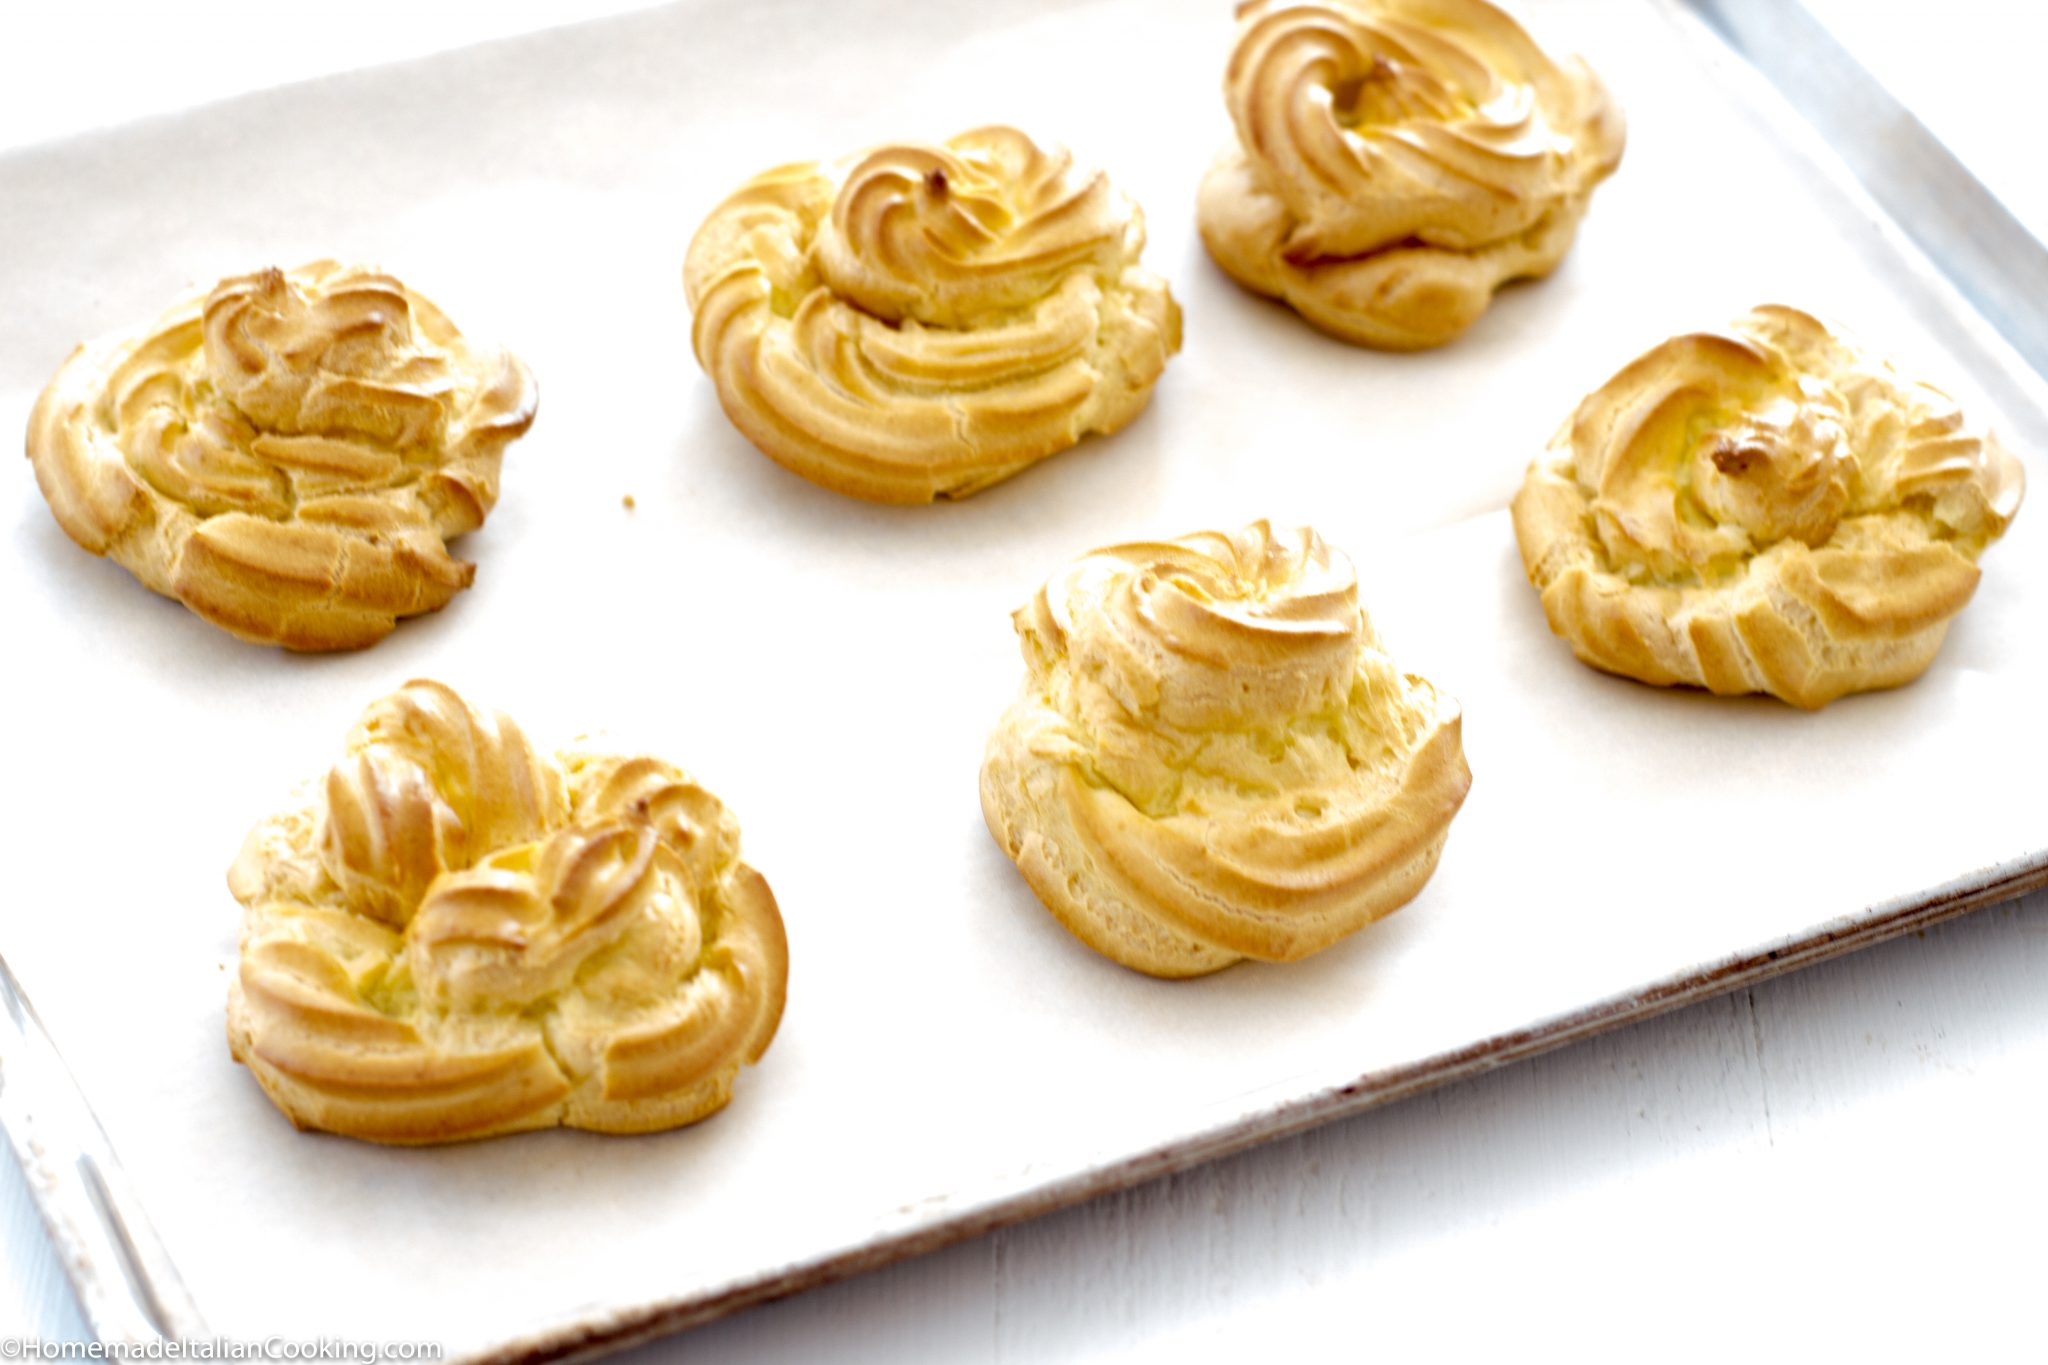 Pipe The Vanilla Custard Filling Into The Center Of The Zeppole Or Cut Them In Half And Pipe Between The Layers One Tip To Simplify The Recipe Is To Use A